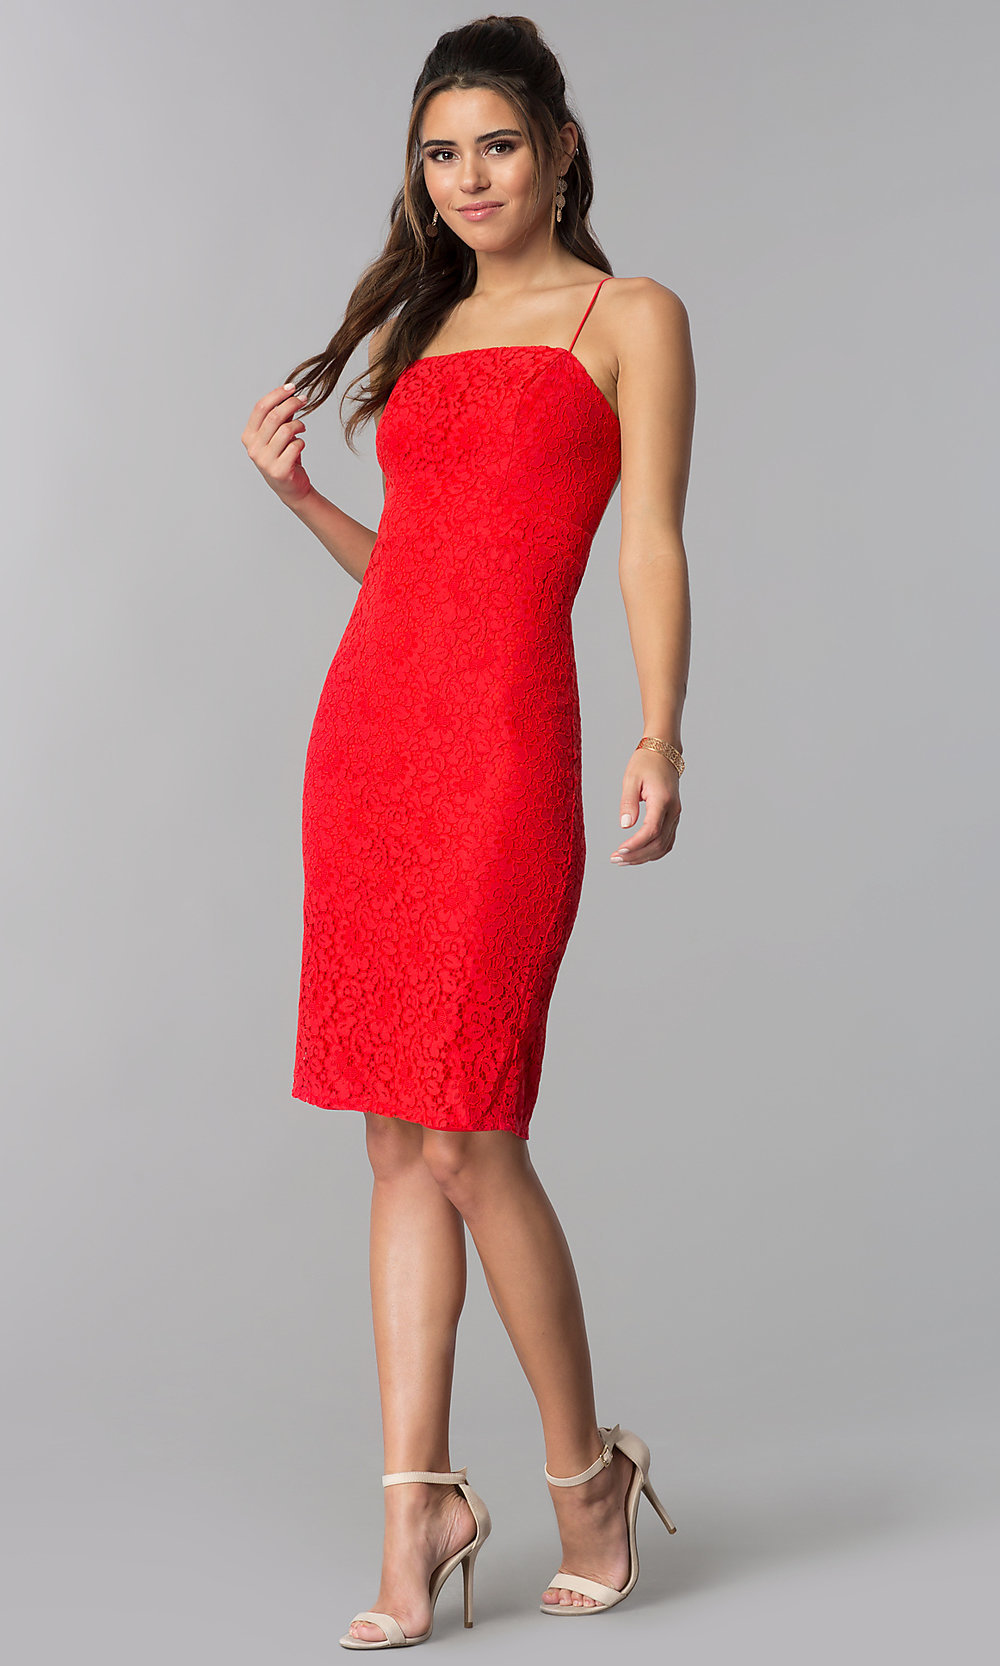 Candy Red Dress